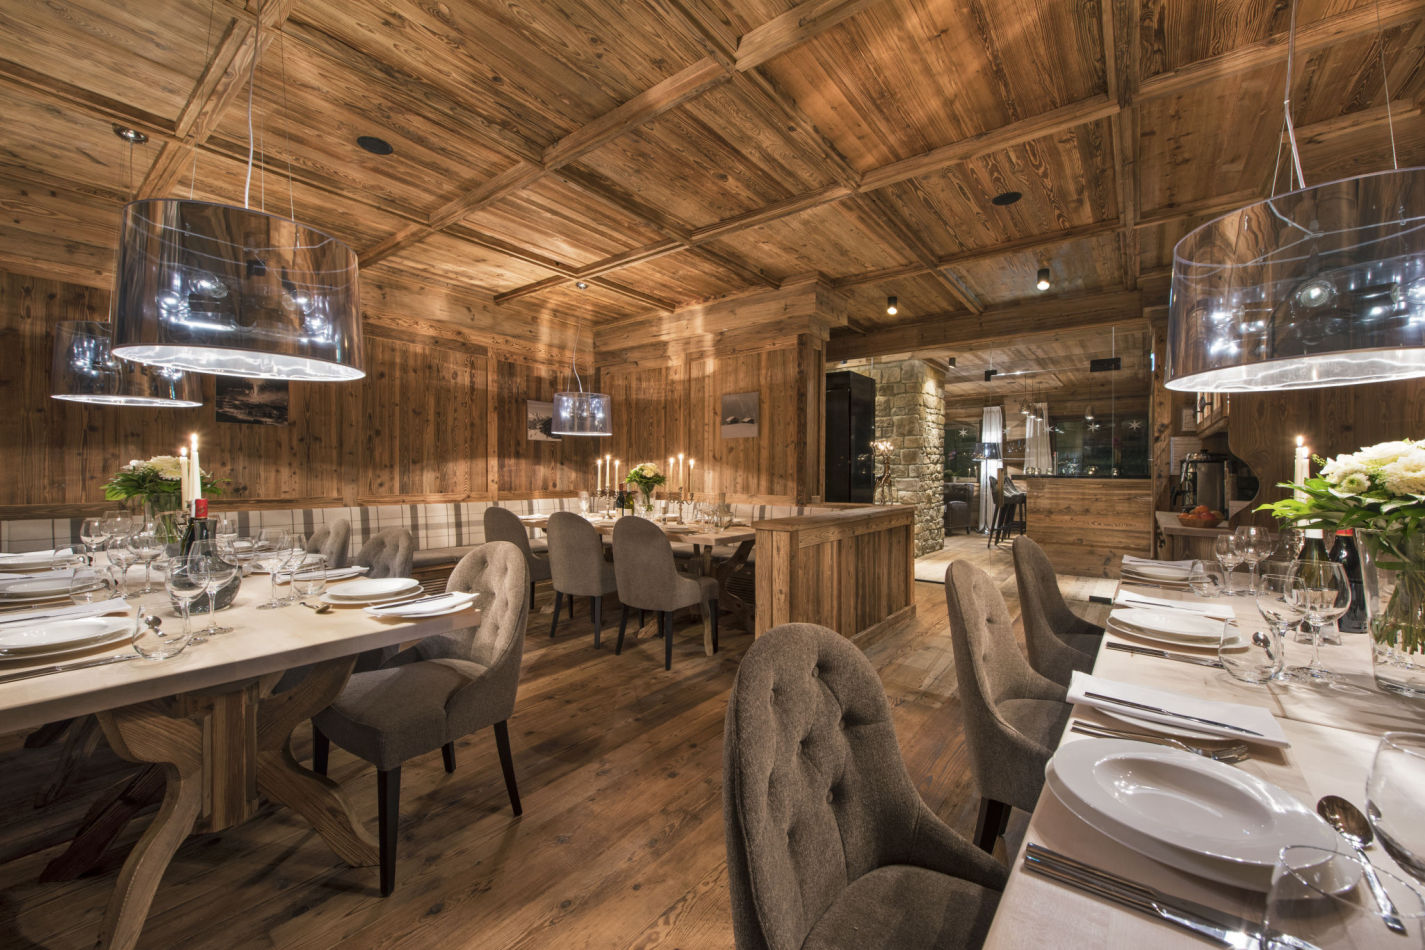 The expansive timber-clad dining room of Chalet Eden Rock